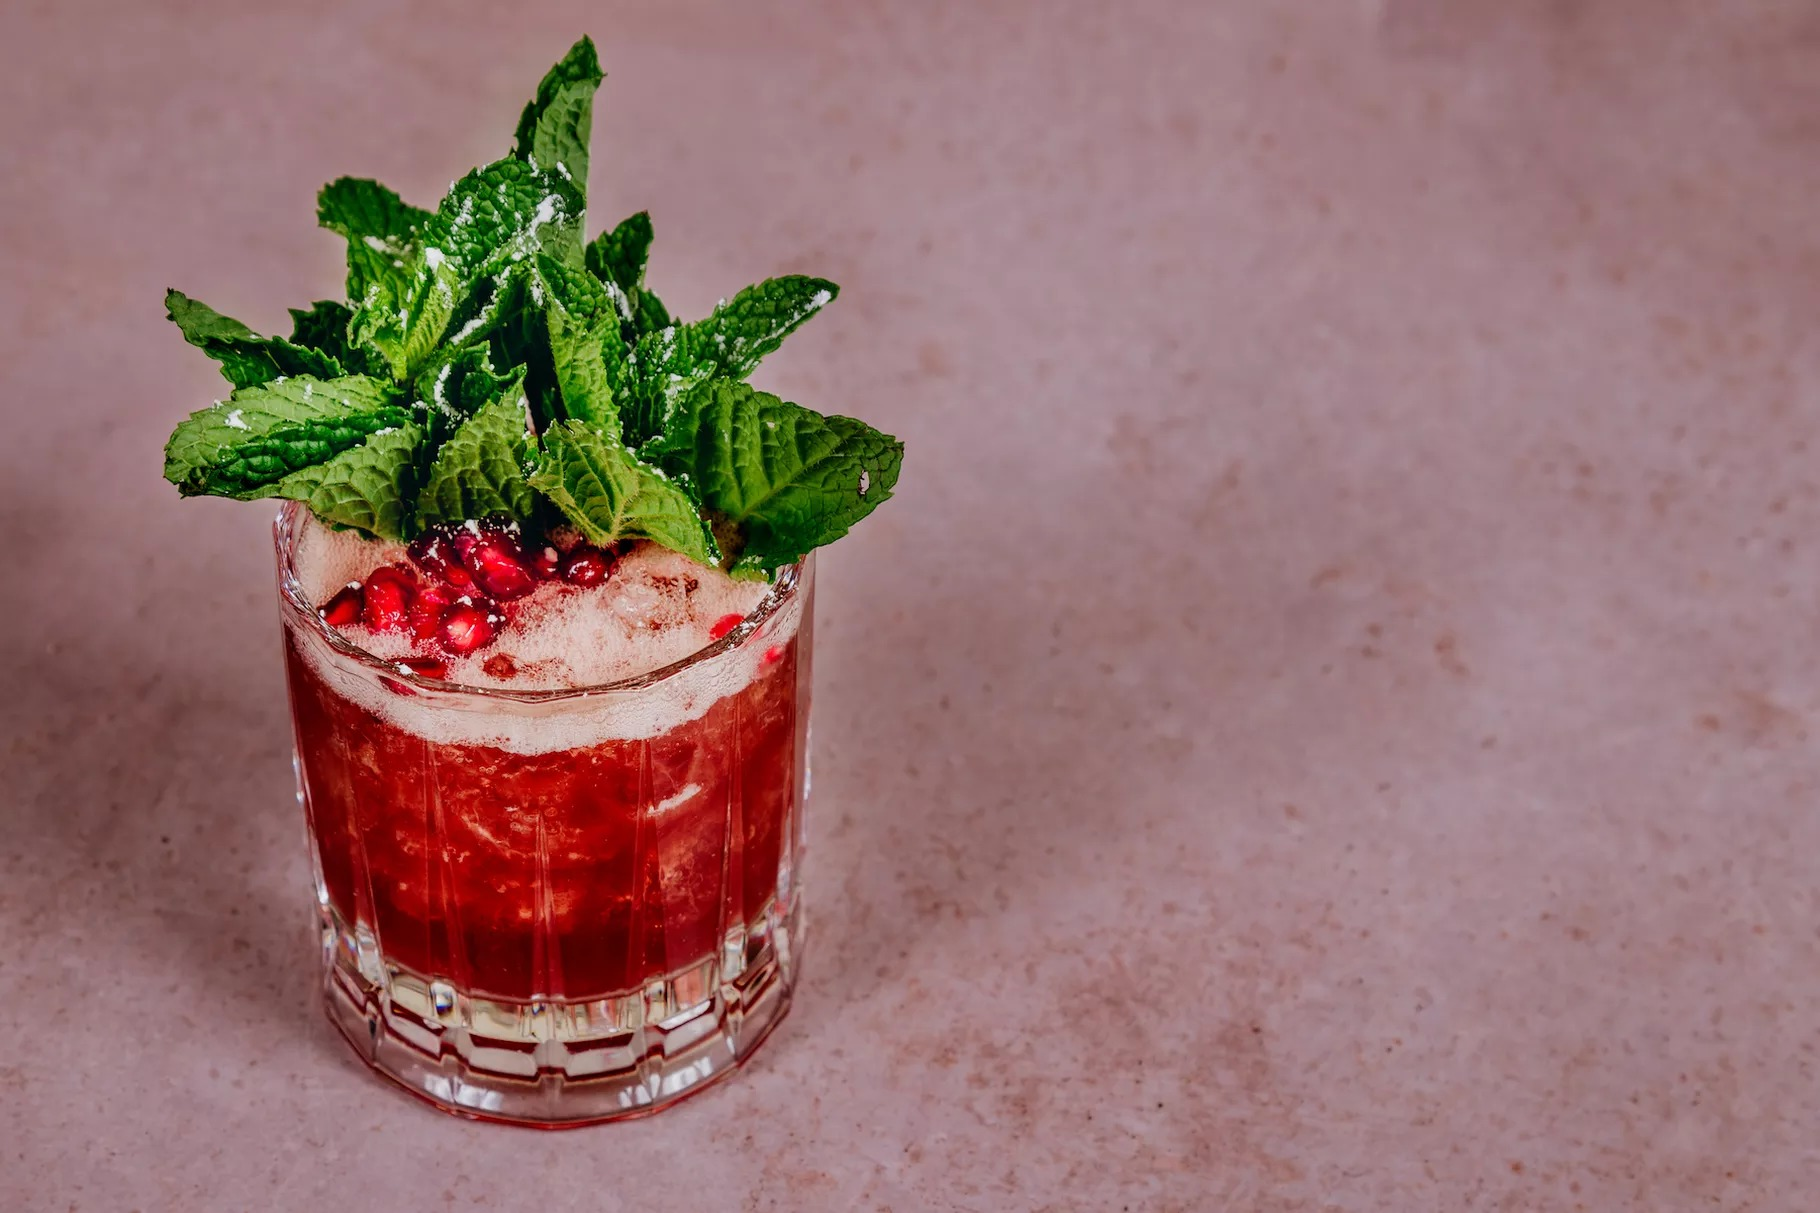 A red cocktail with pomegranate seeds and a green shrub garnish.